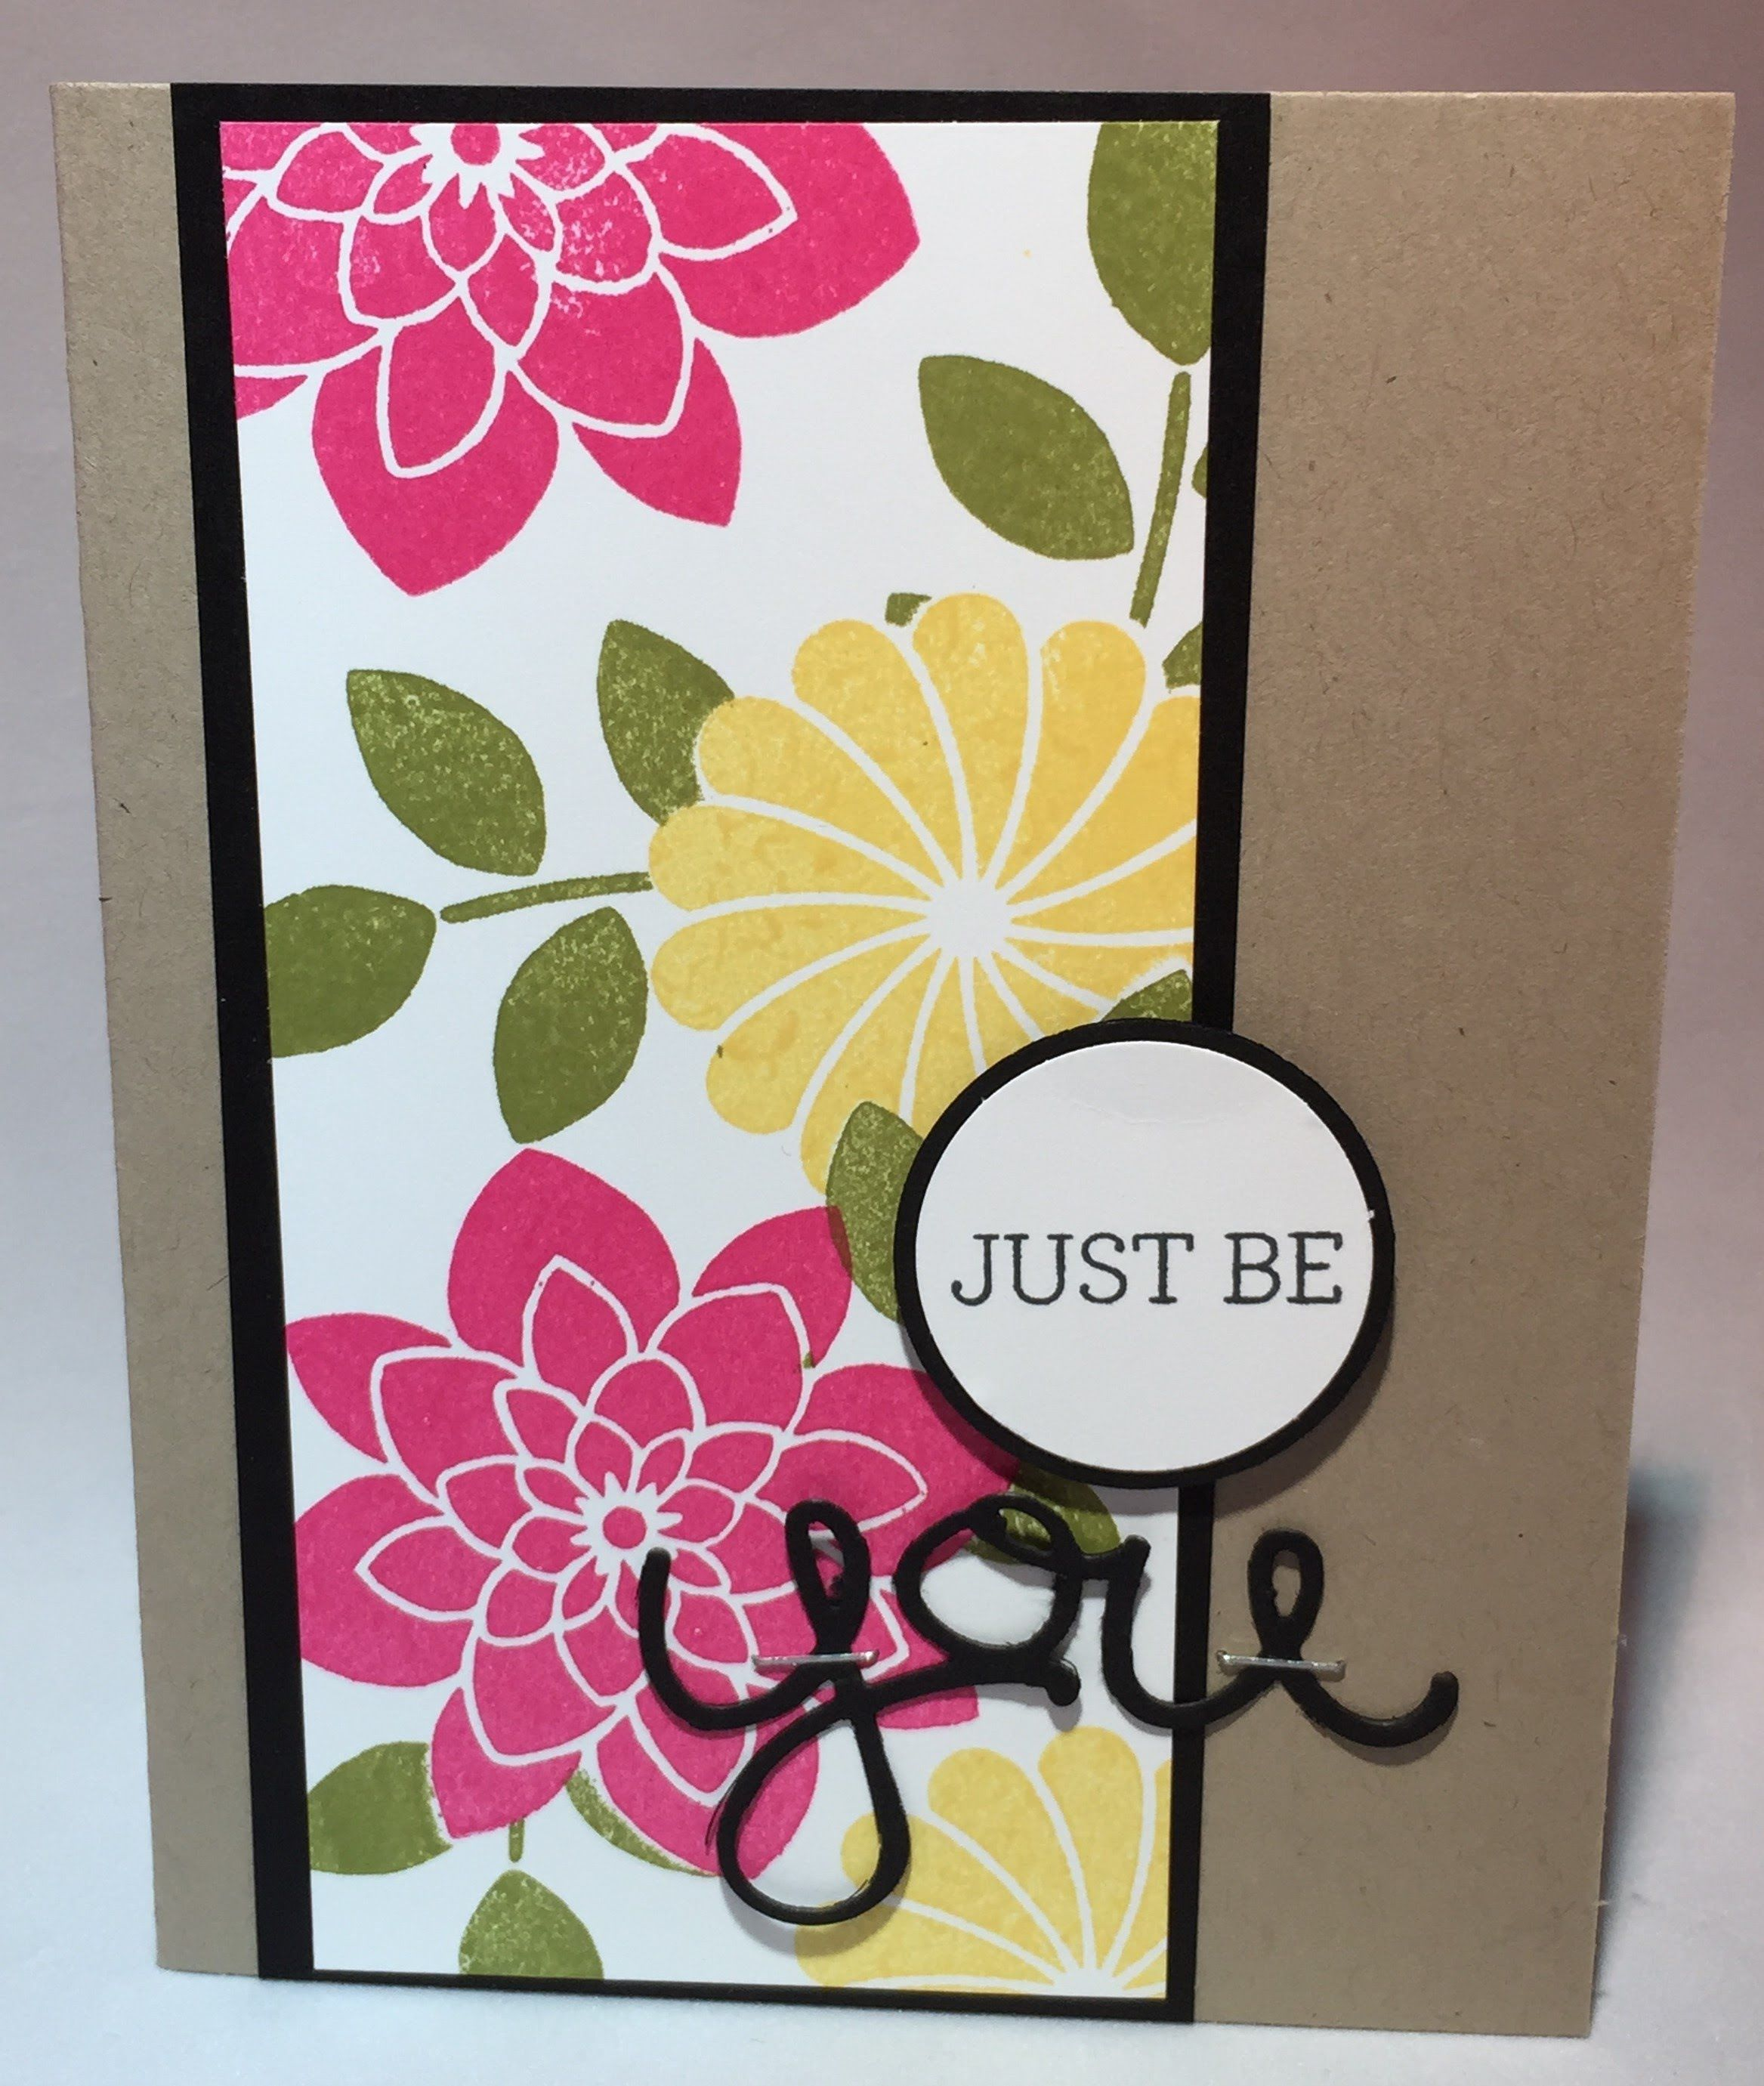 Crazy about you stampin up january online card class card 3 of 6 crazy about you stampin up january online card class card 3 of 6 kristyandbryce Gallery